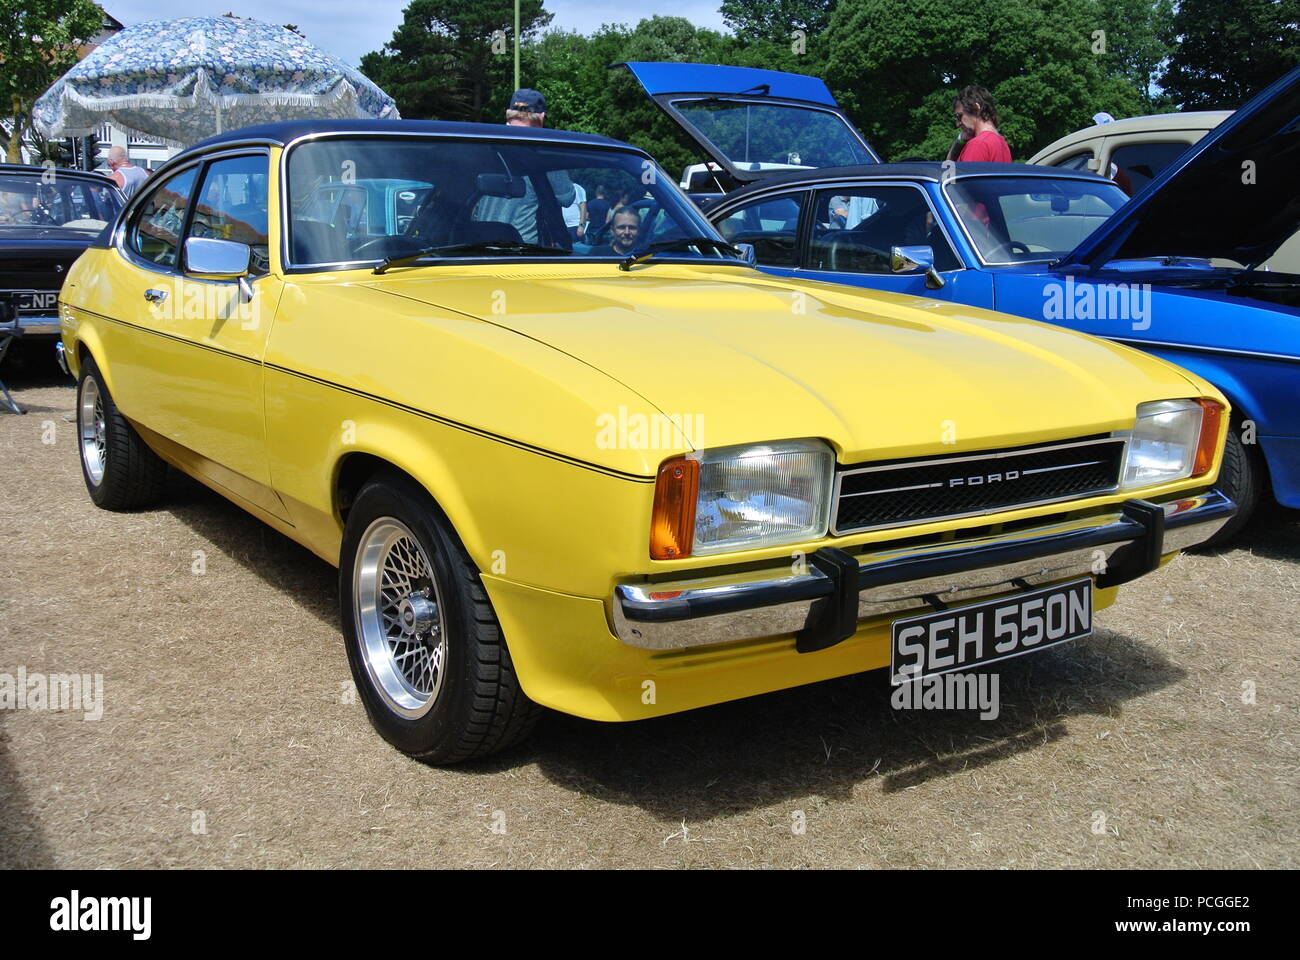 A Ford Capri MkII parked up on display at the English Riviera classic car show, Paignton, Devon, England, UK - Stock Image